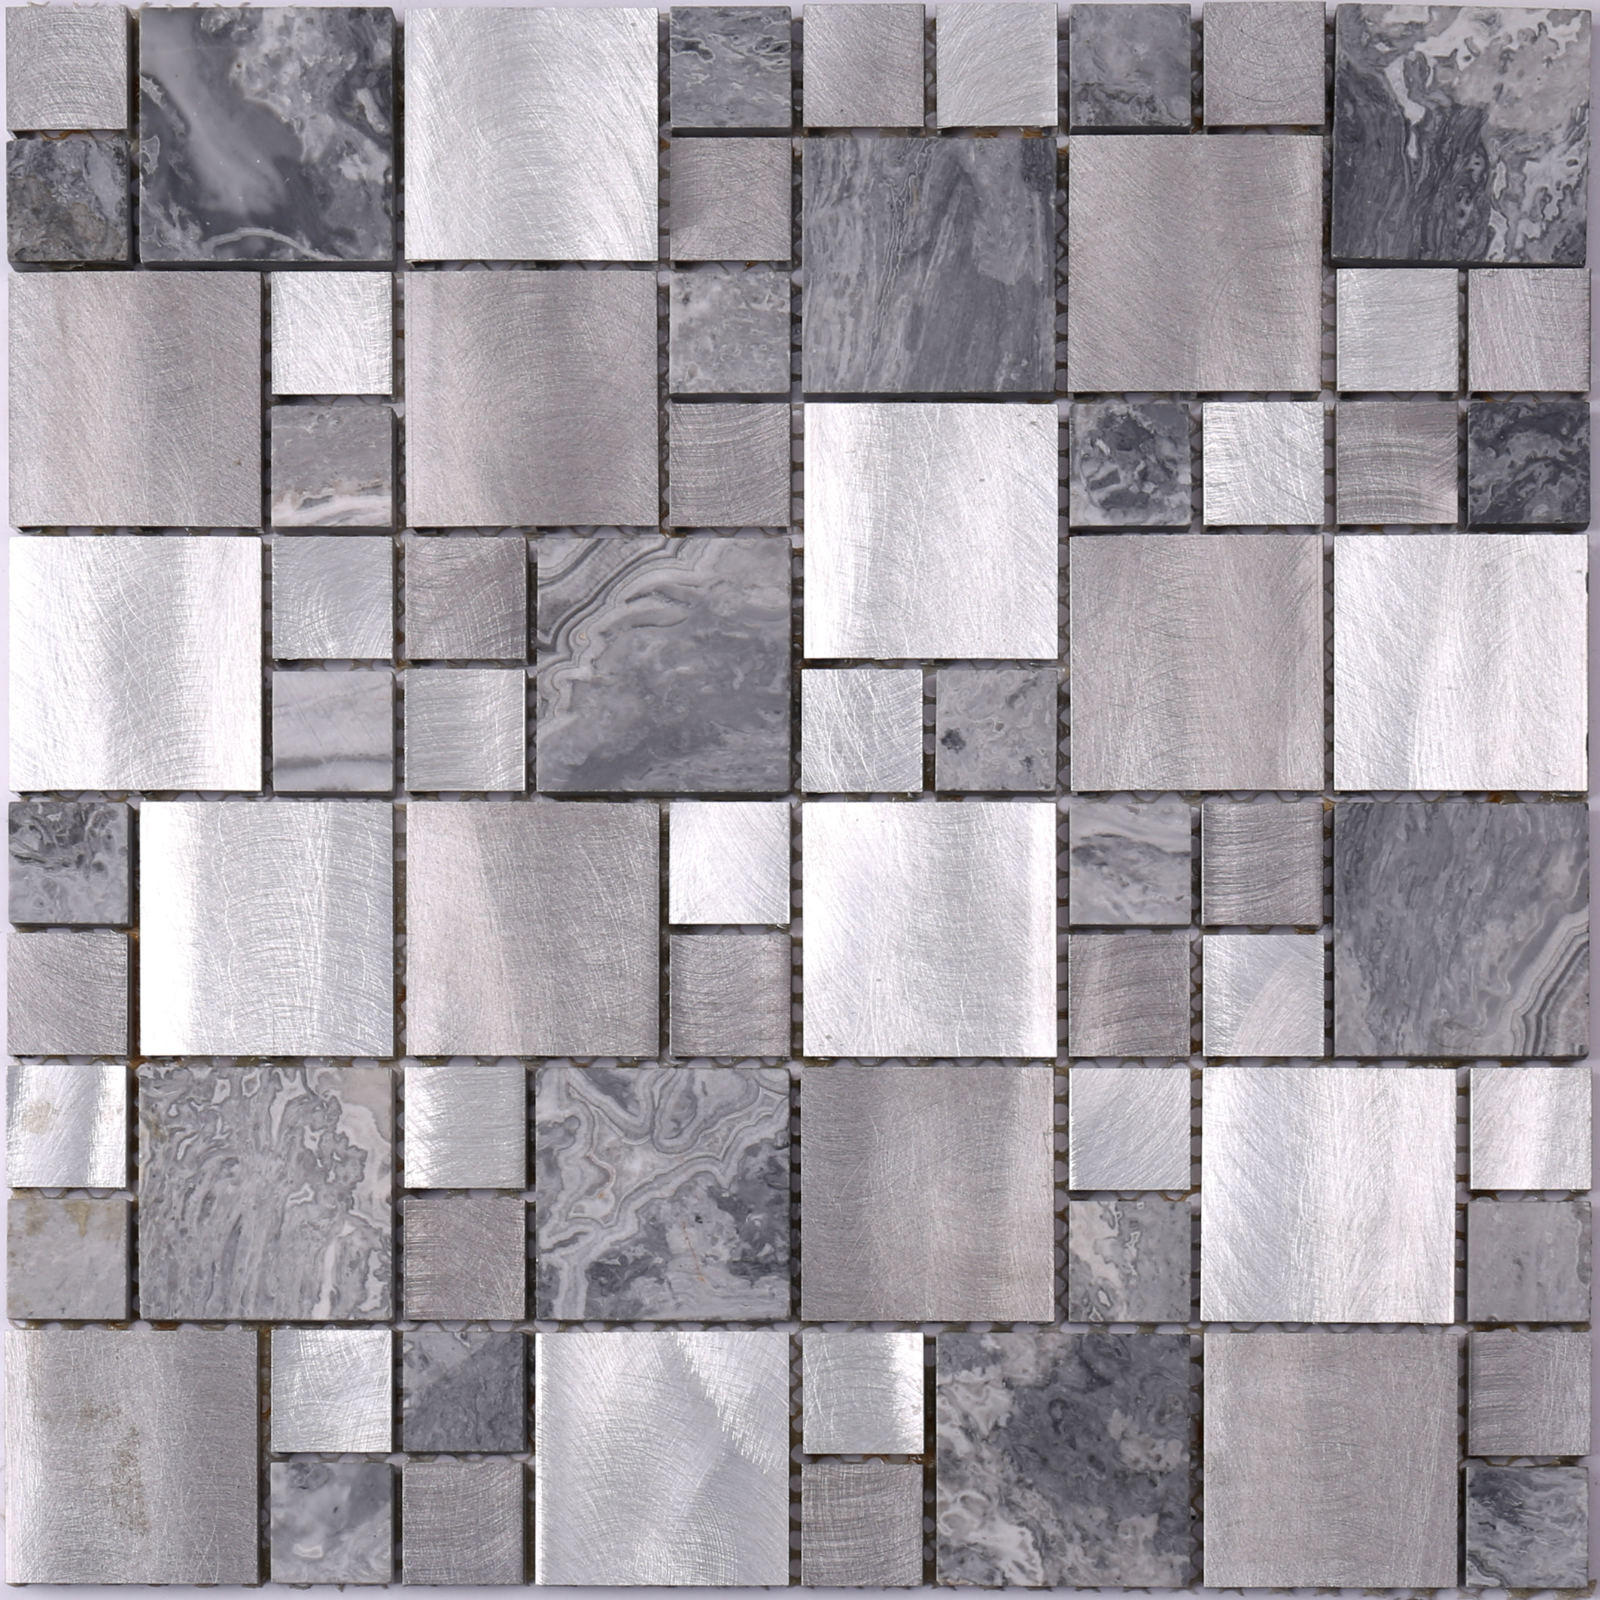 Heng Xing stable decorative mosaic tiles Suppliers for living room-2